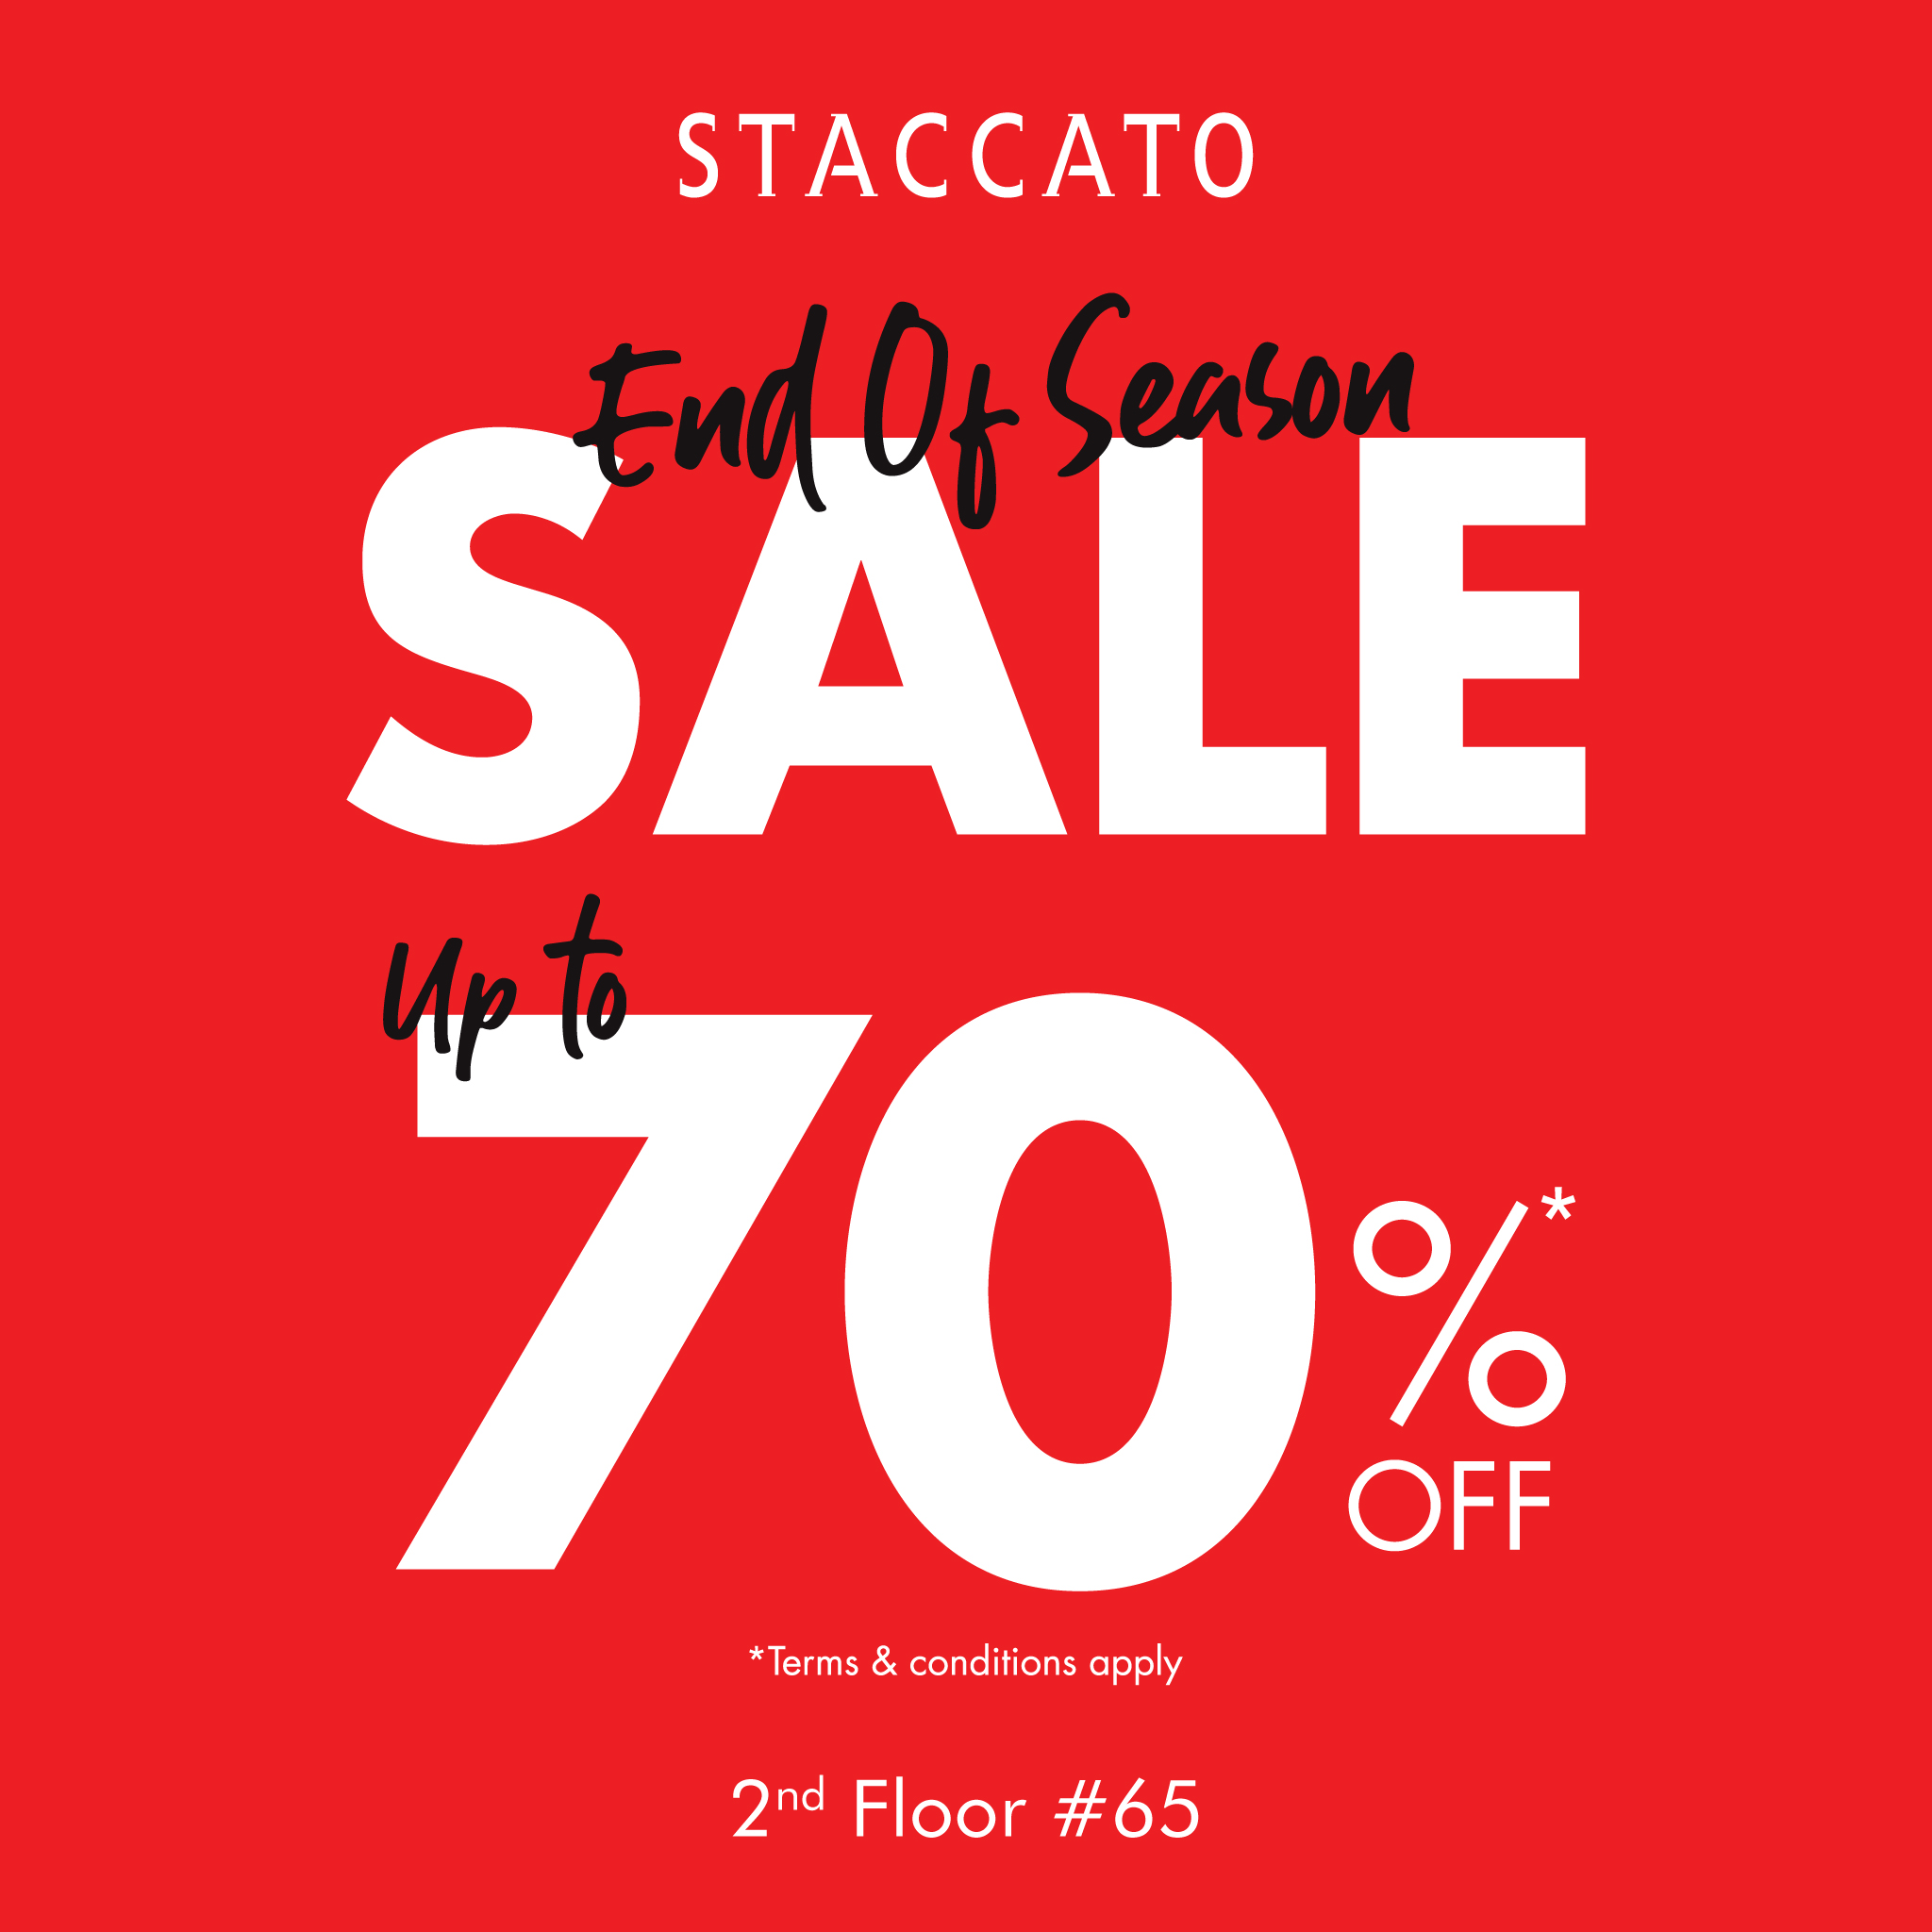 STACCATO END OF SEASON